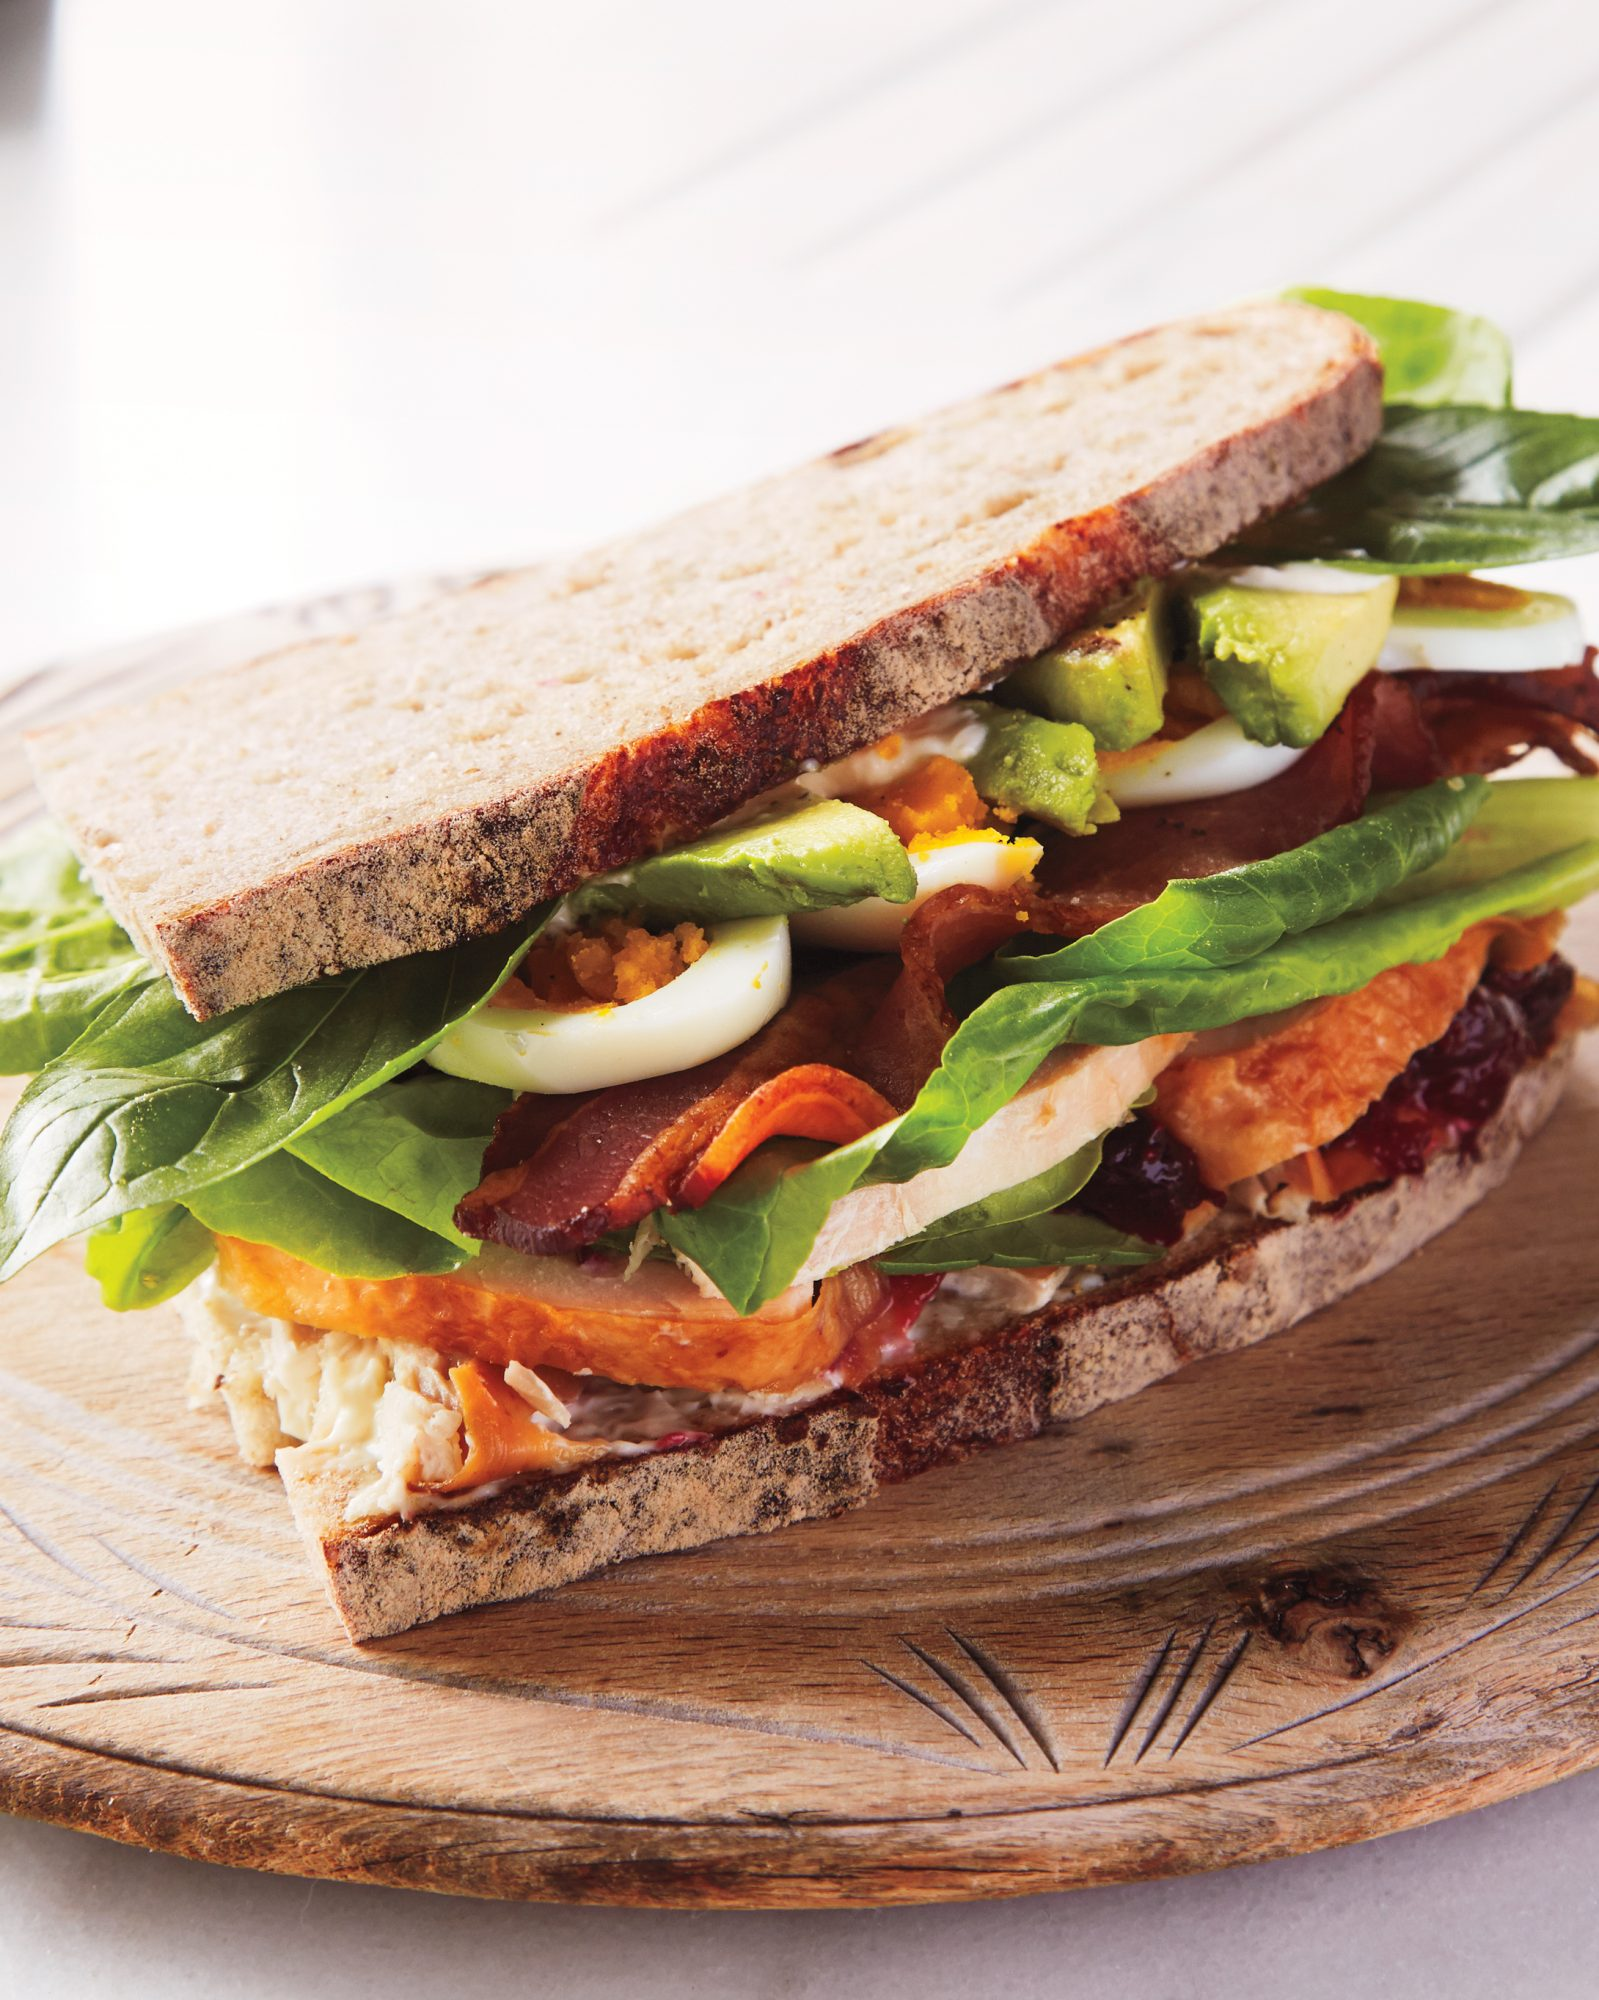 turkey-sandwich-0131-d111198.jpg